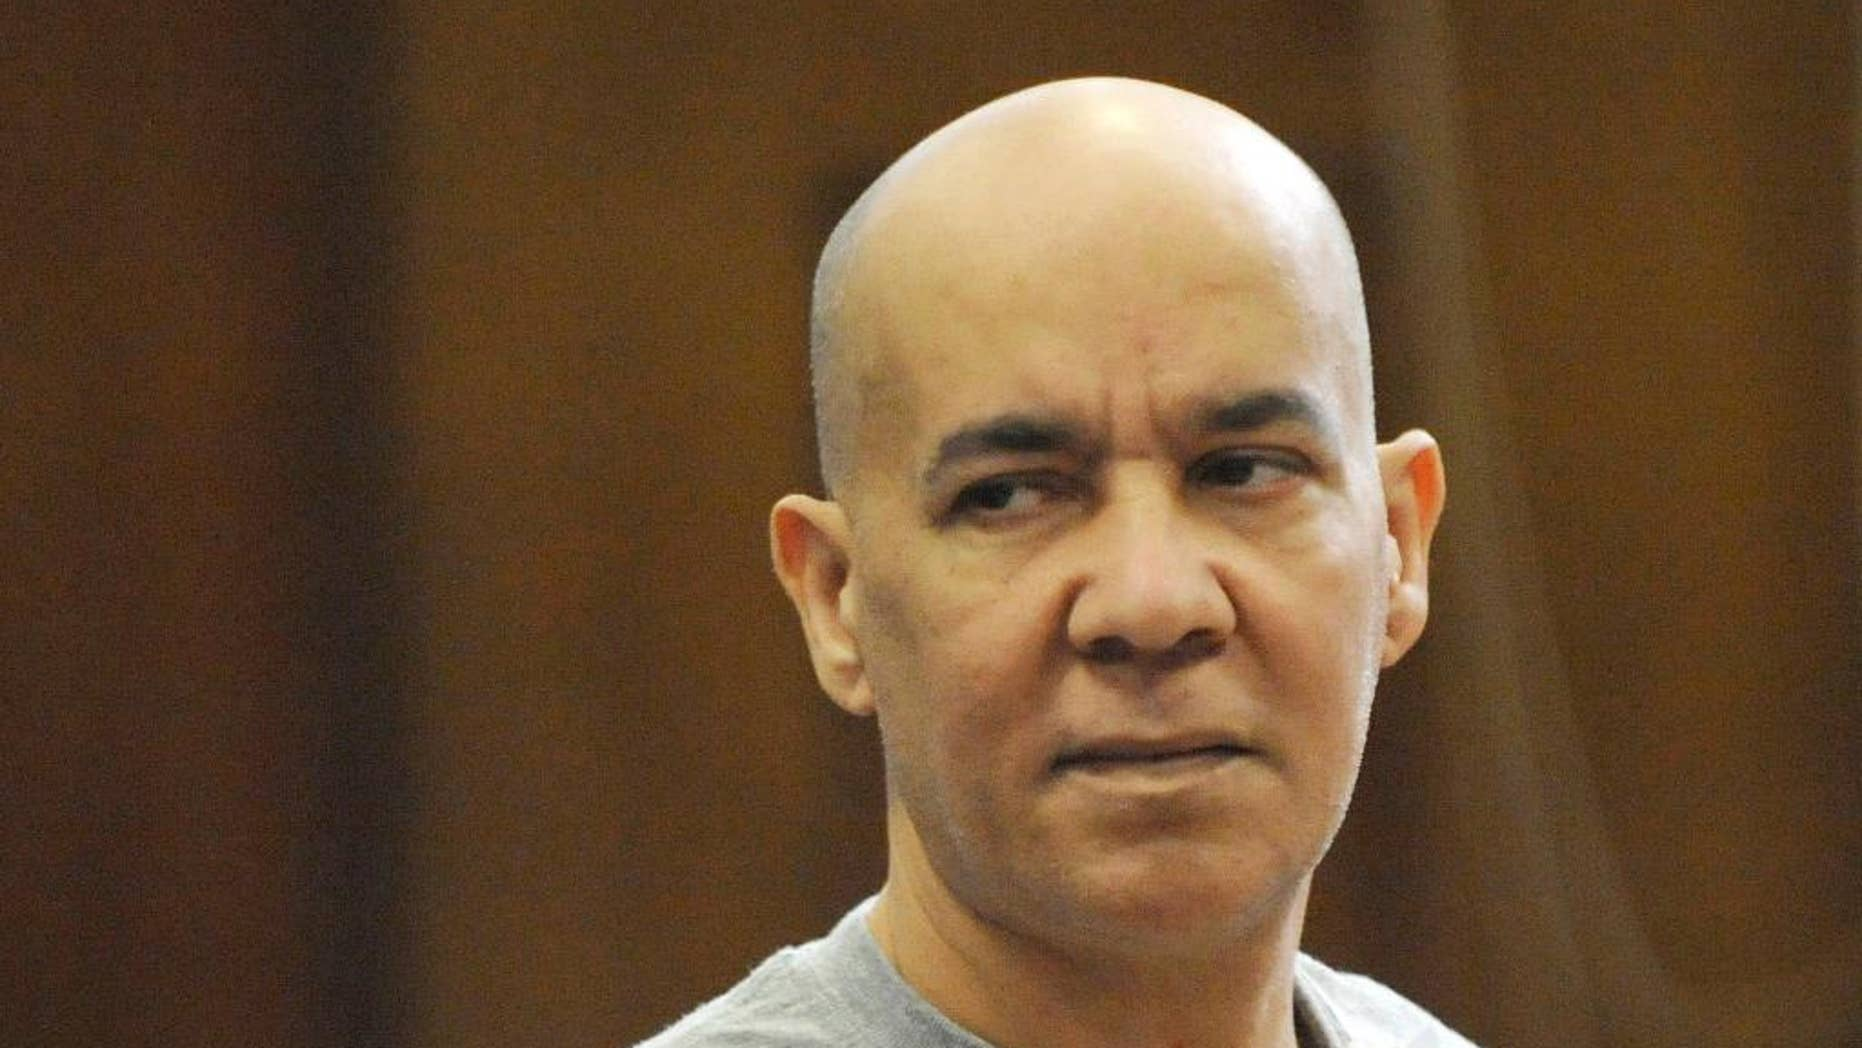 FILE - In this Nov. 15, 2012, file photo, Pedro Hernandez appears in Manhattan criminal court in New York. Jurors are scheduled to hear closing arguments Monday, April 13, 2015, in the case against the 54-year-old New Jersey man accused of killing 6-year-old Etan Patz on May 25, 1979 as the boy headed to school. (AP Photo/Louis Lanzano, Pool, File)